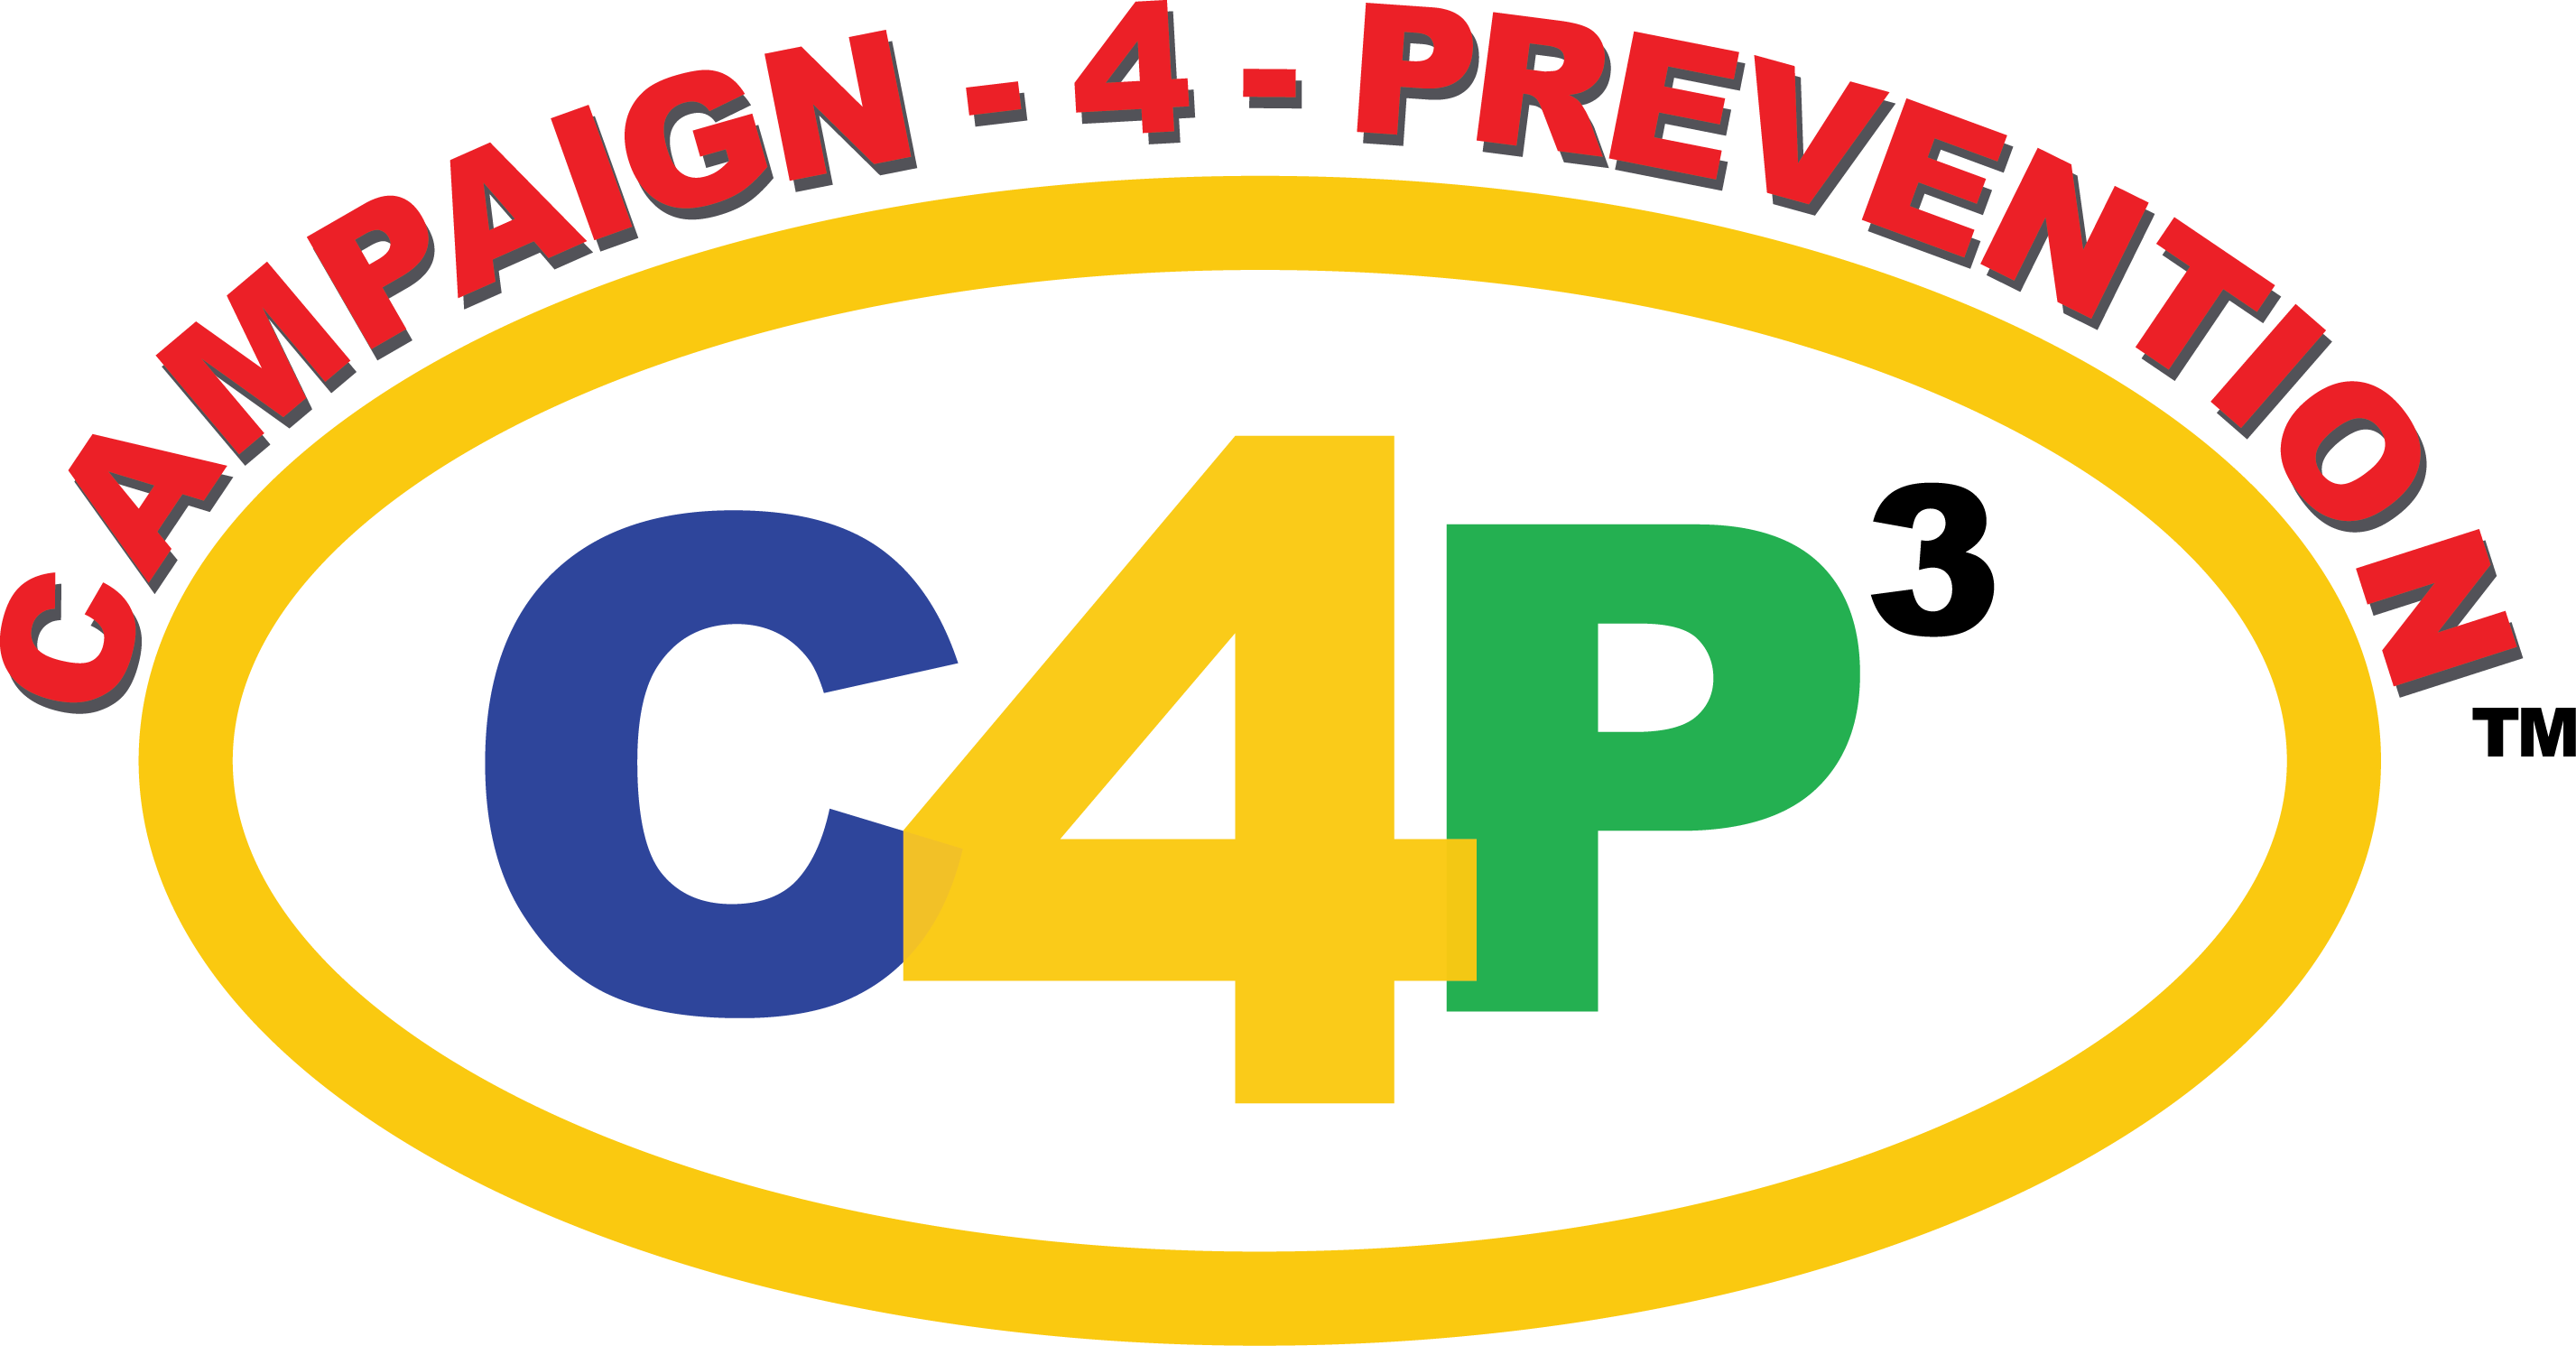 c4p3 logo-extra large logo - Copy